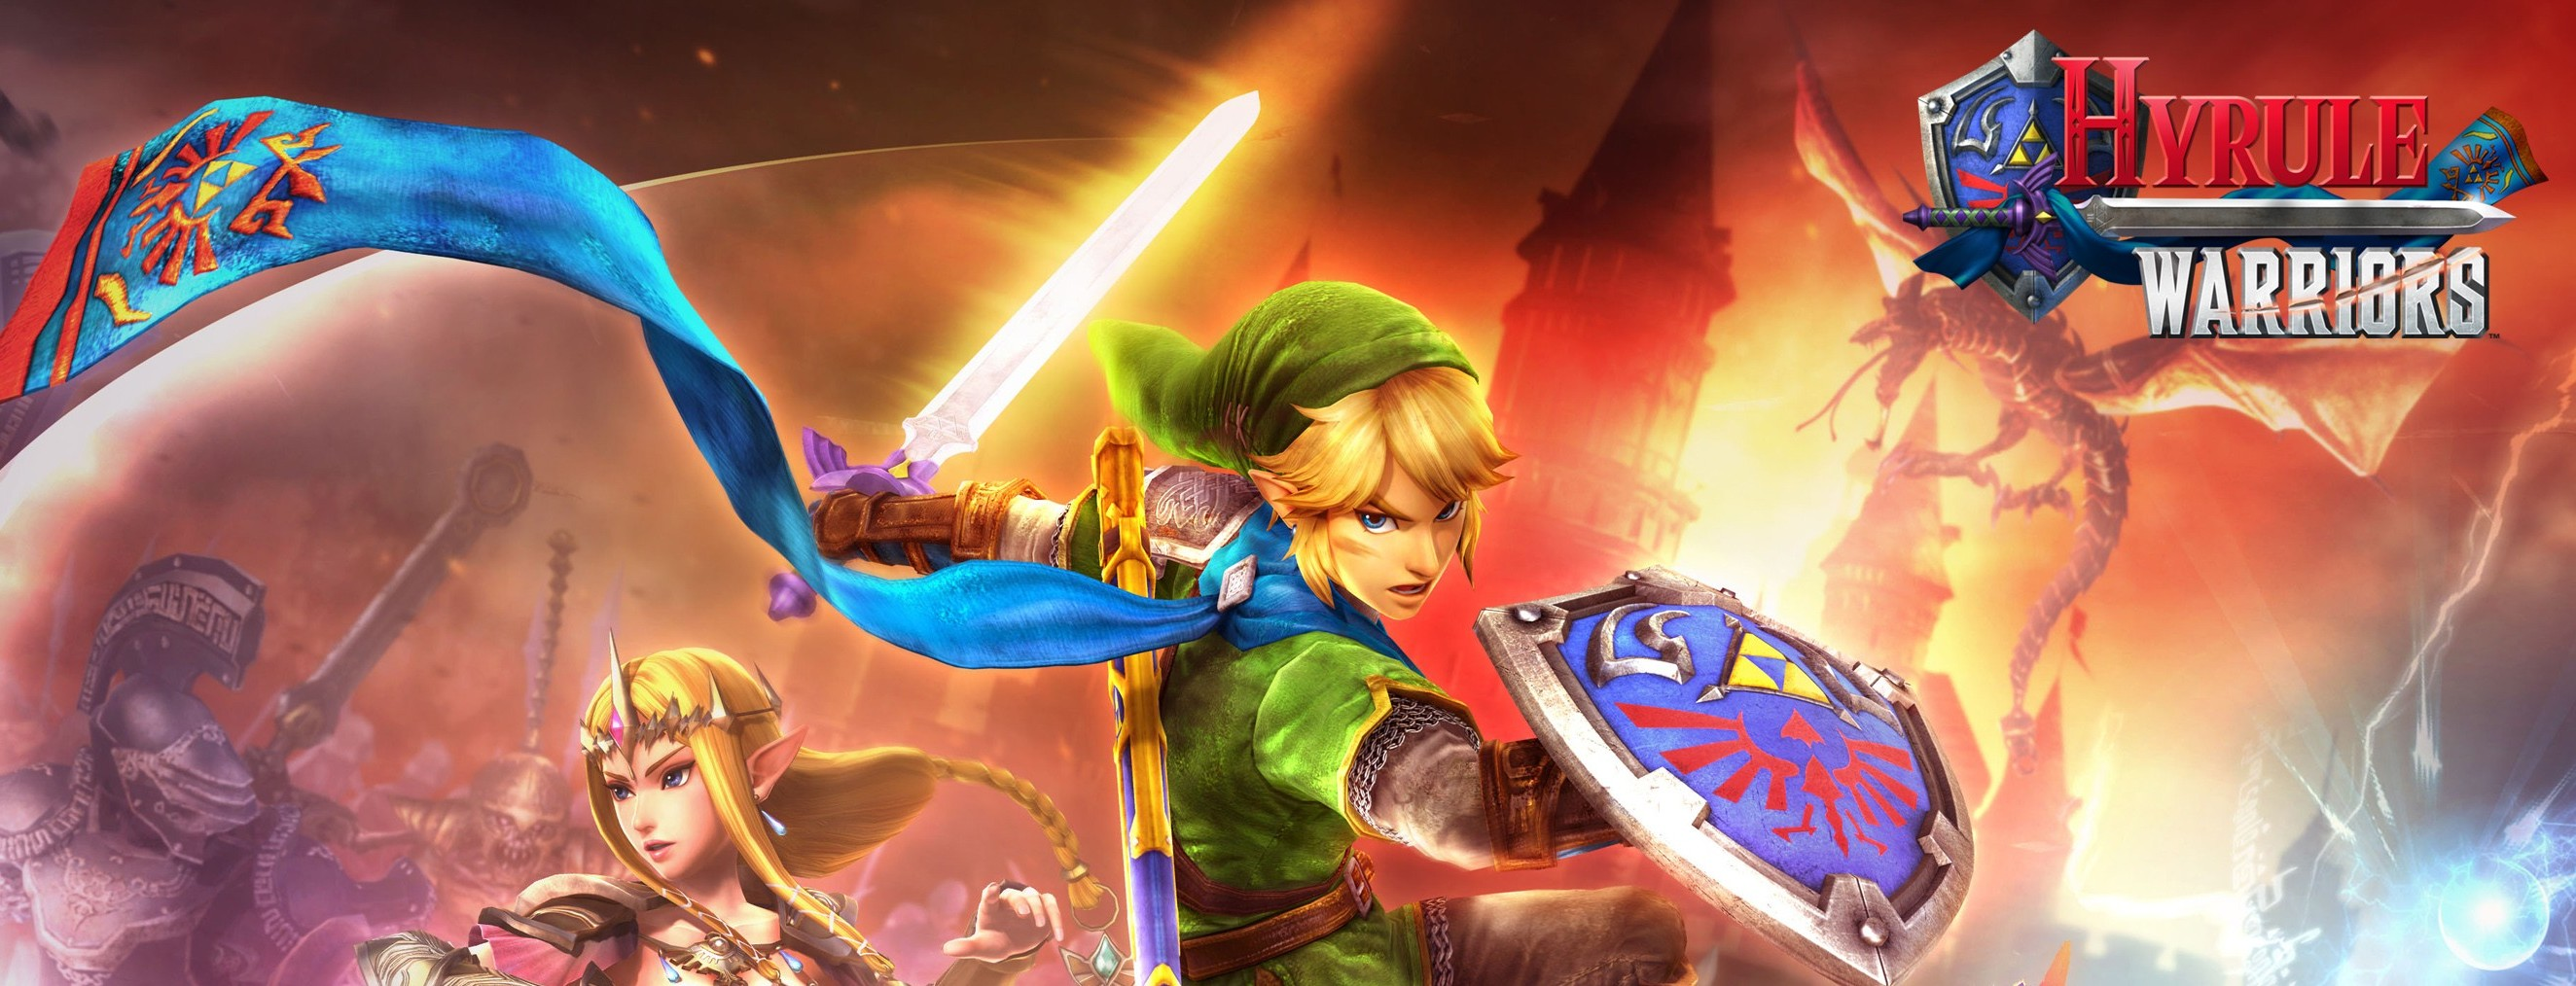 hyrule_warriors_nintendo_wii_u